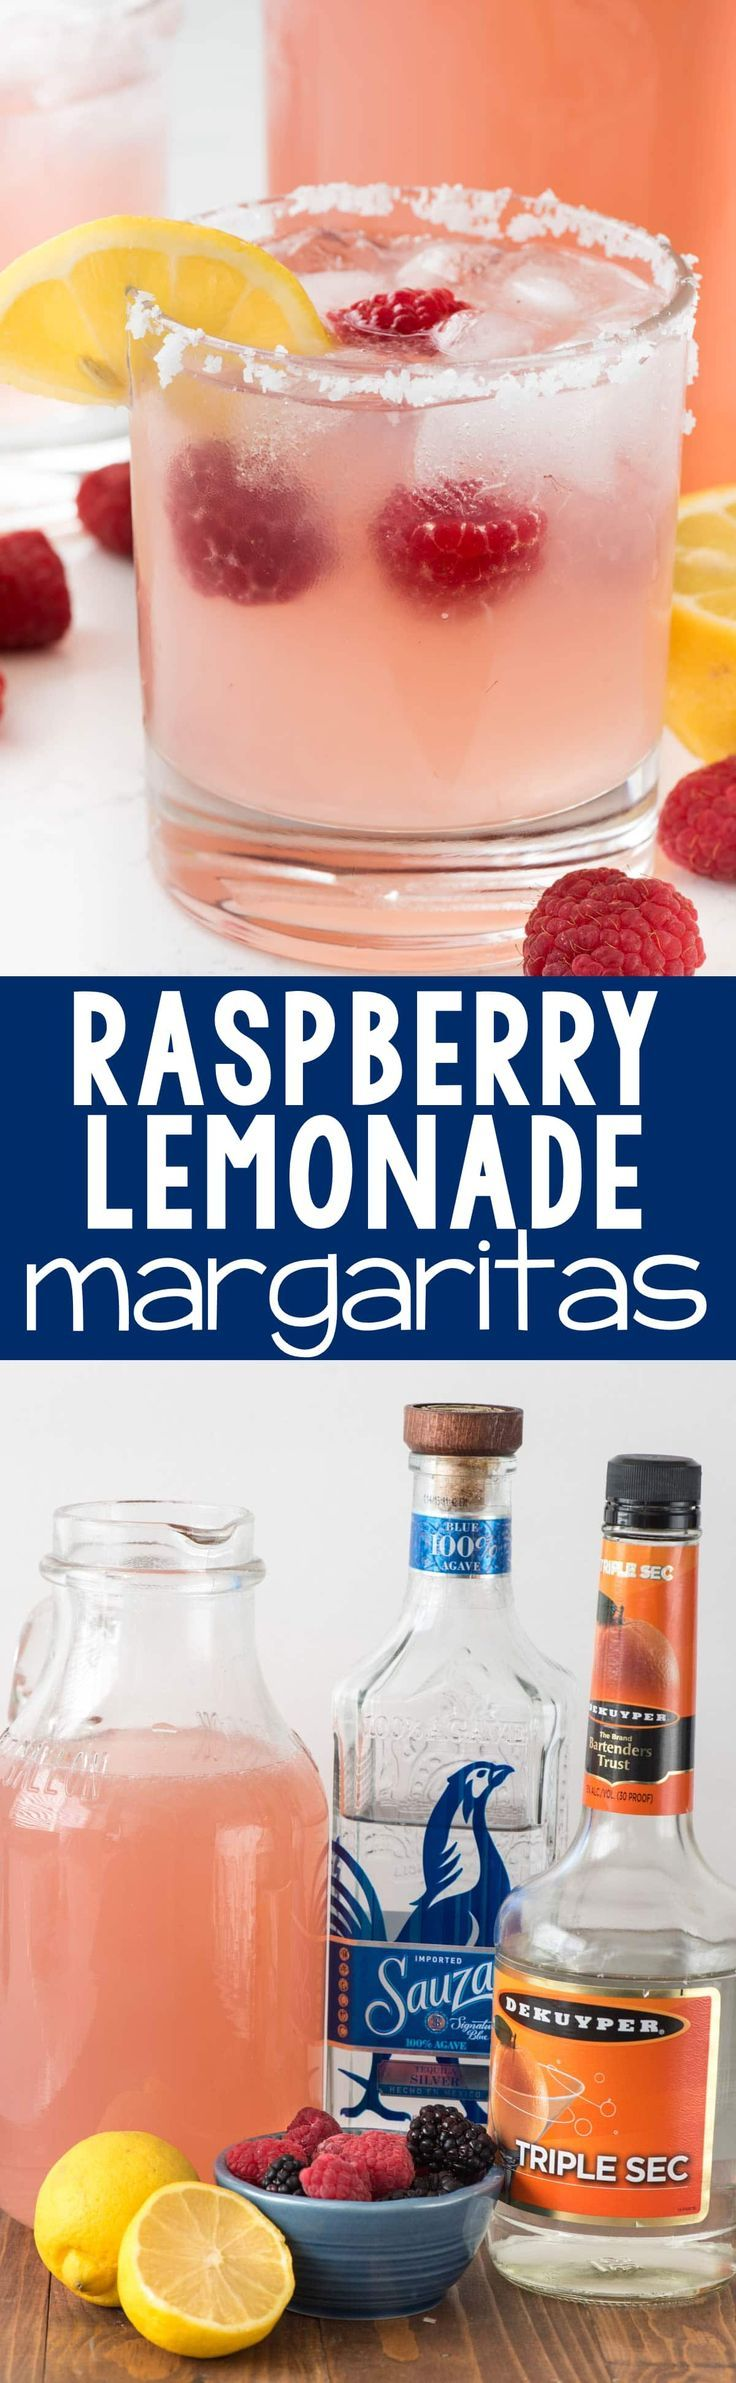 Raspberry Lemonade Margarita - this EASY cocktail recipe is the perfect margarita! Raspberry Lemonade, tequila, and triple sec- that's all it takes to make a pitcher!